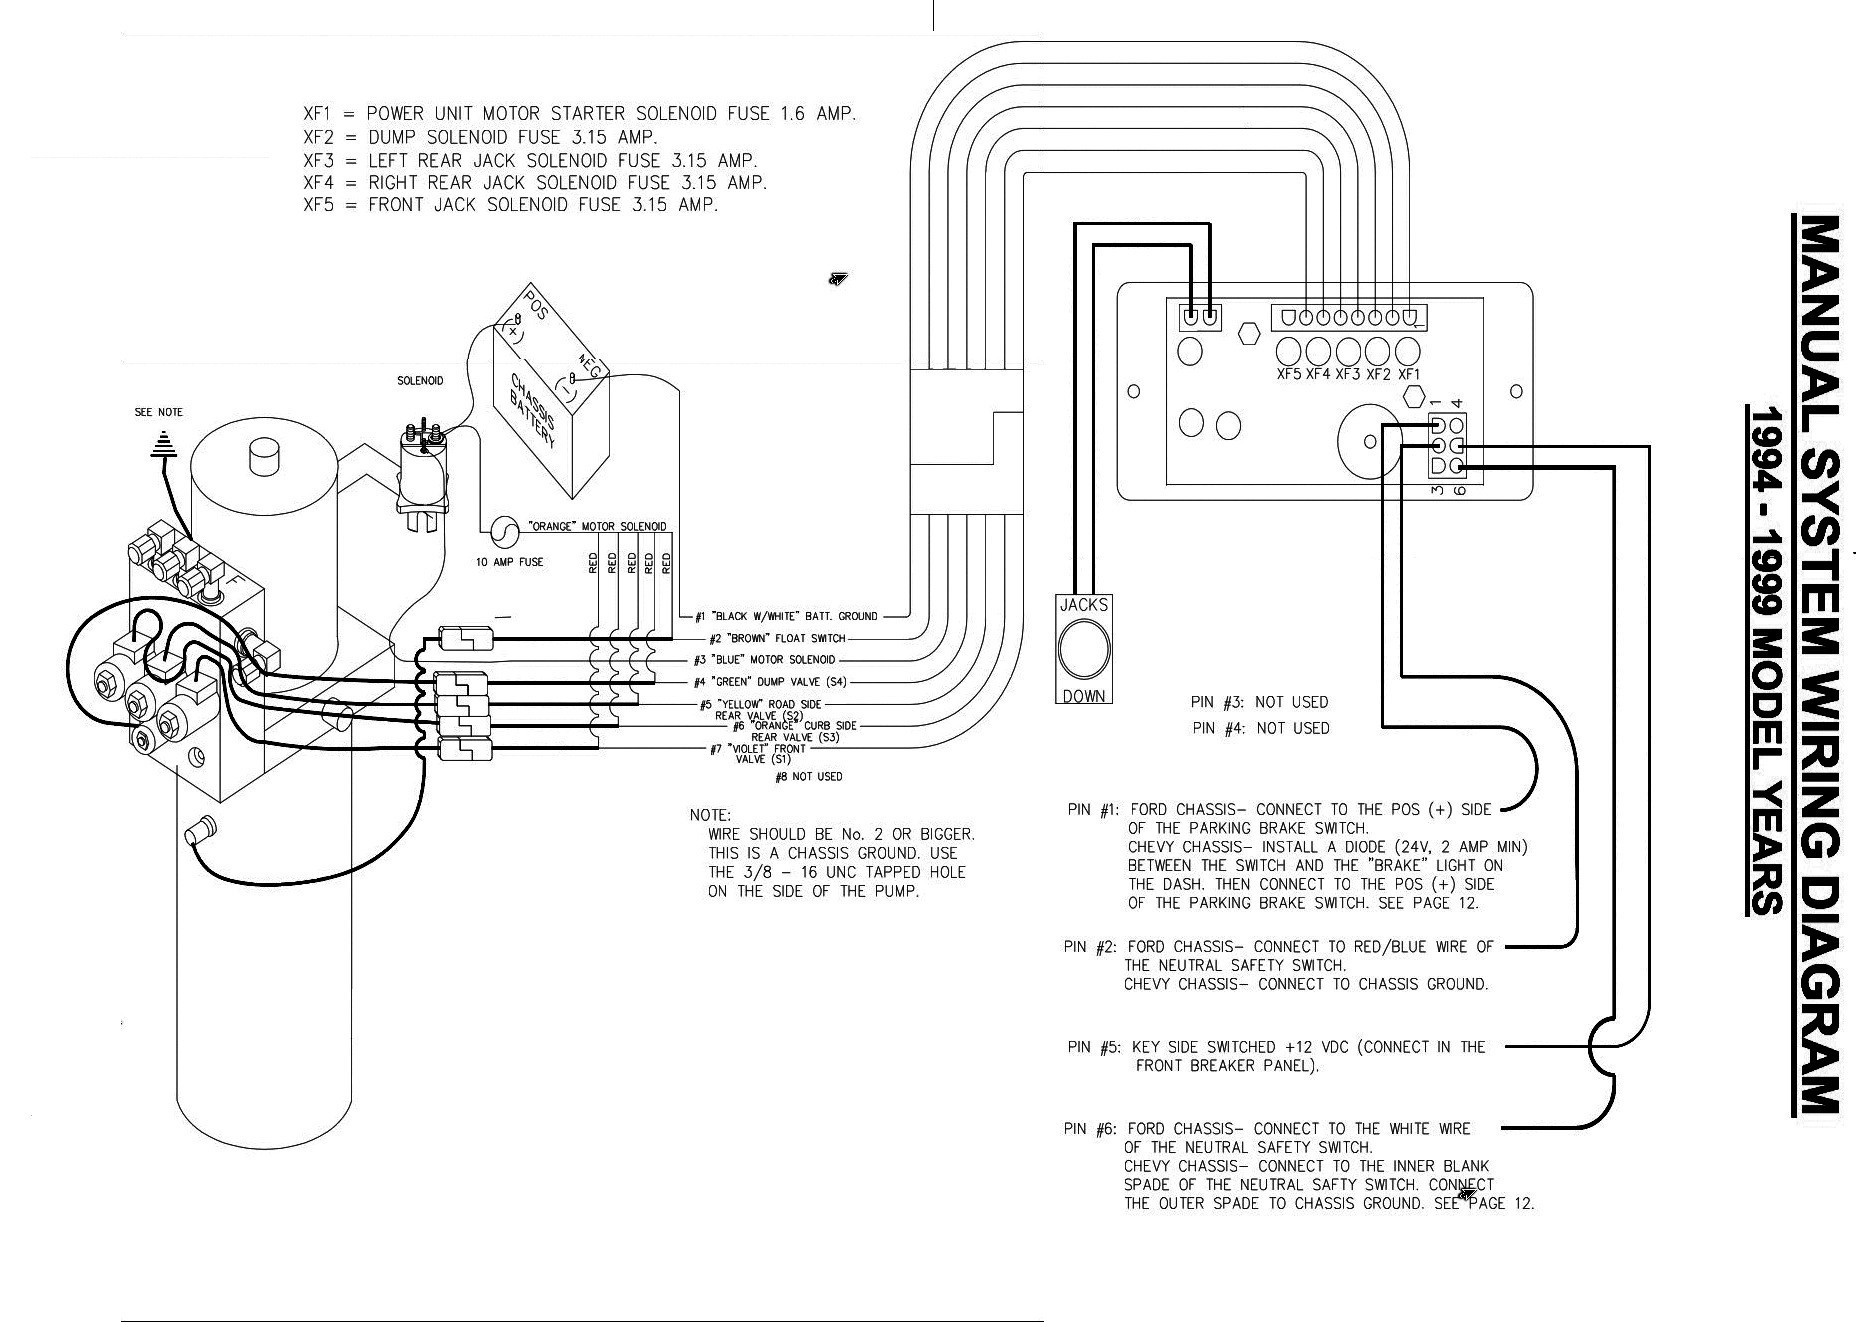 Fleetwood Prowler Wiring Diagram